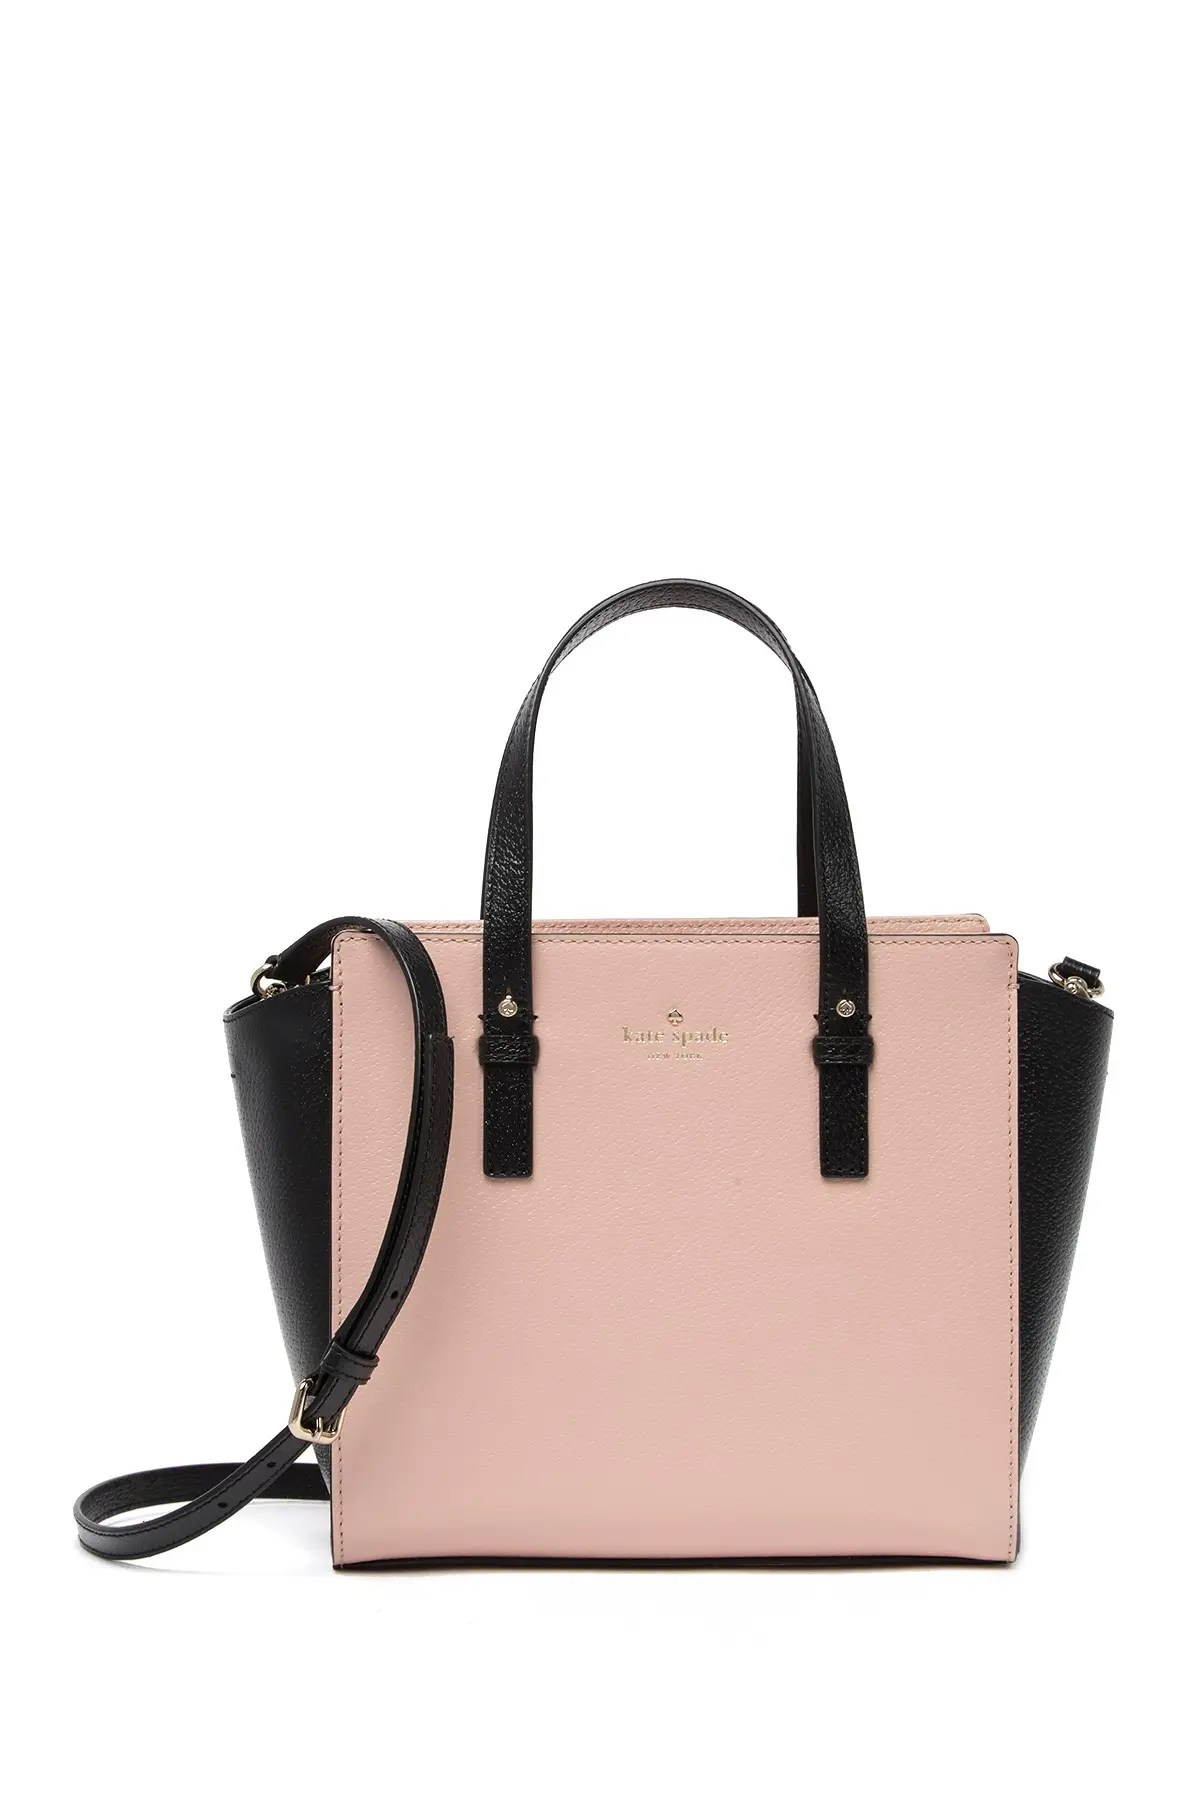 kate spade new york leather grand